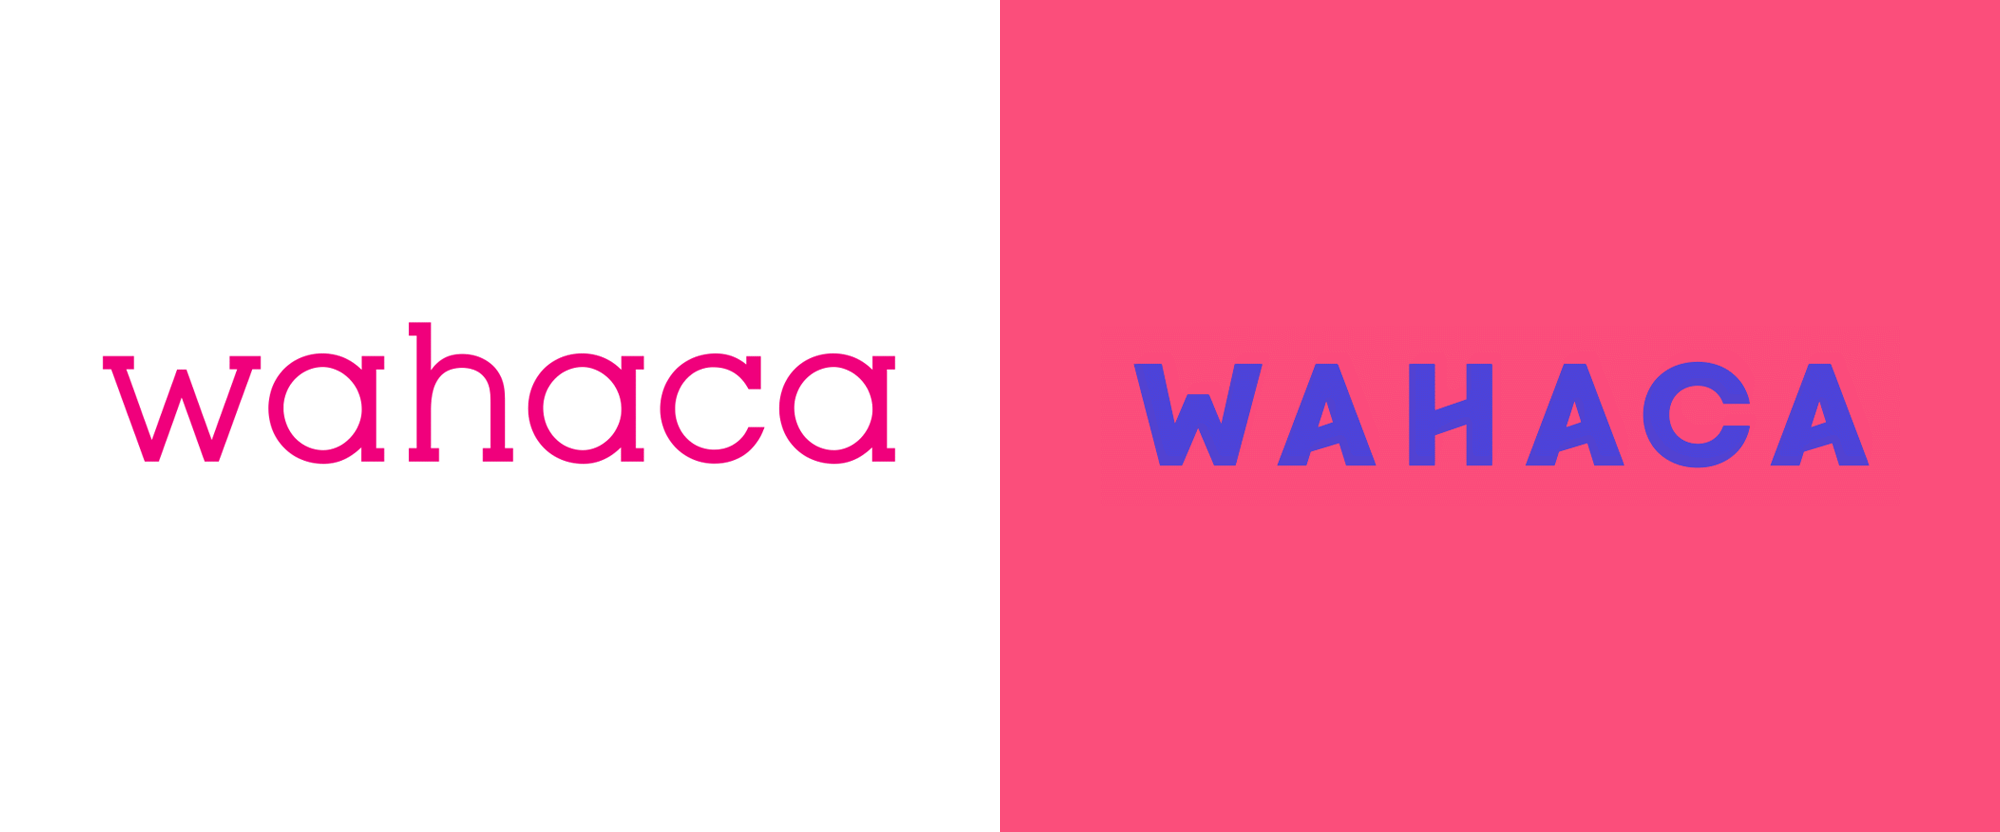 New Logo and Identity for Wahaca by Without